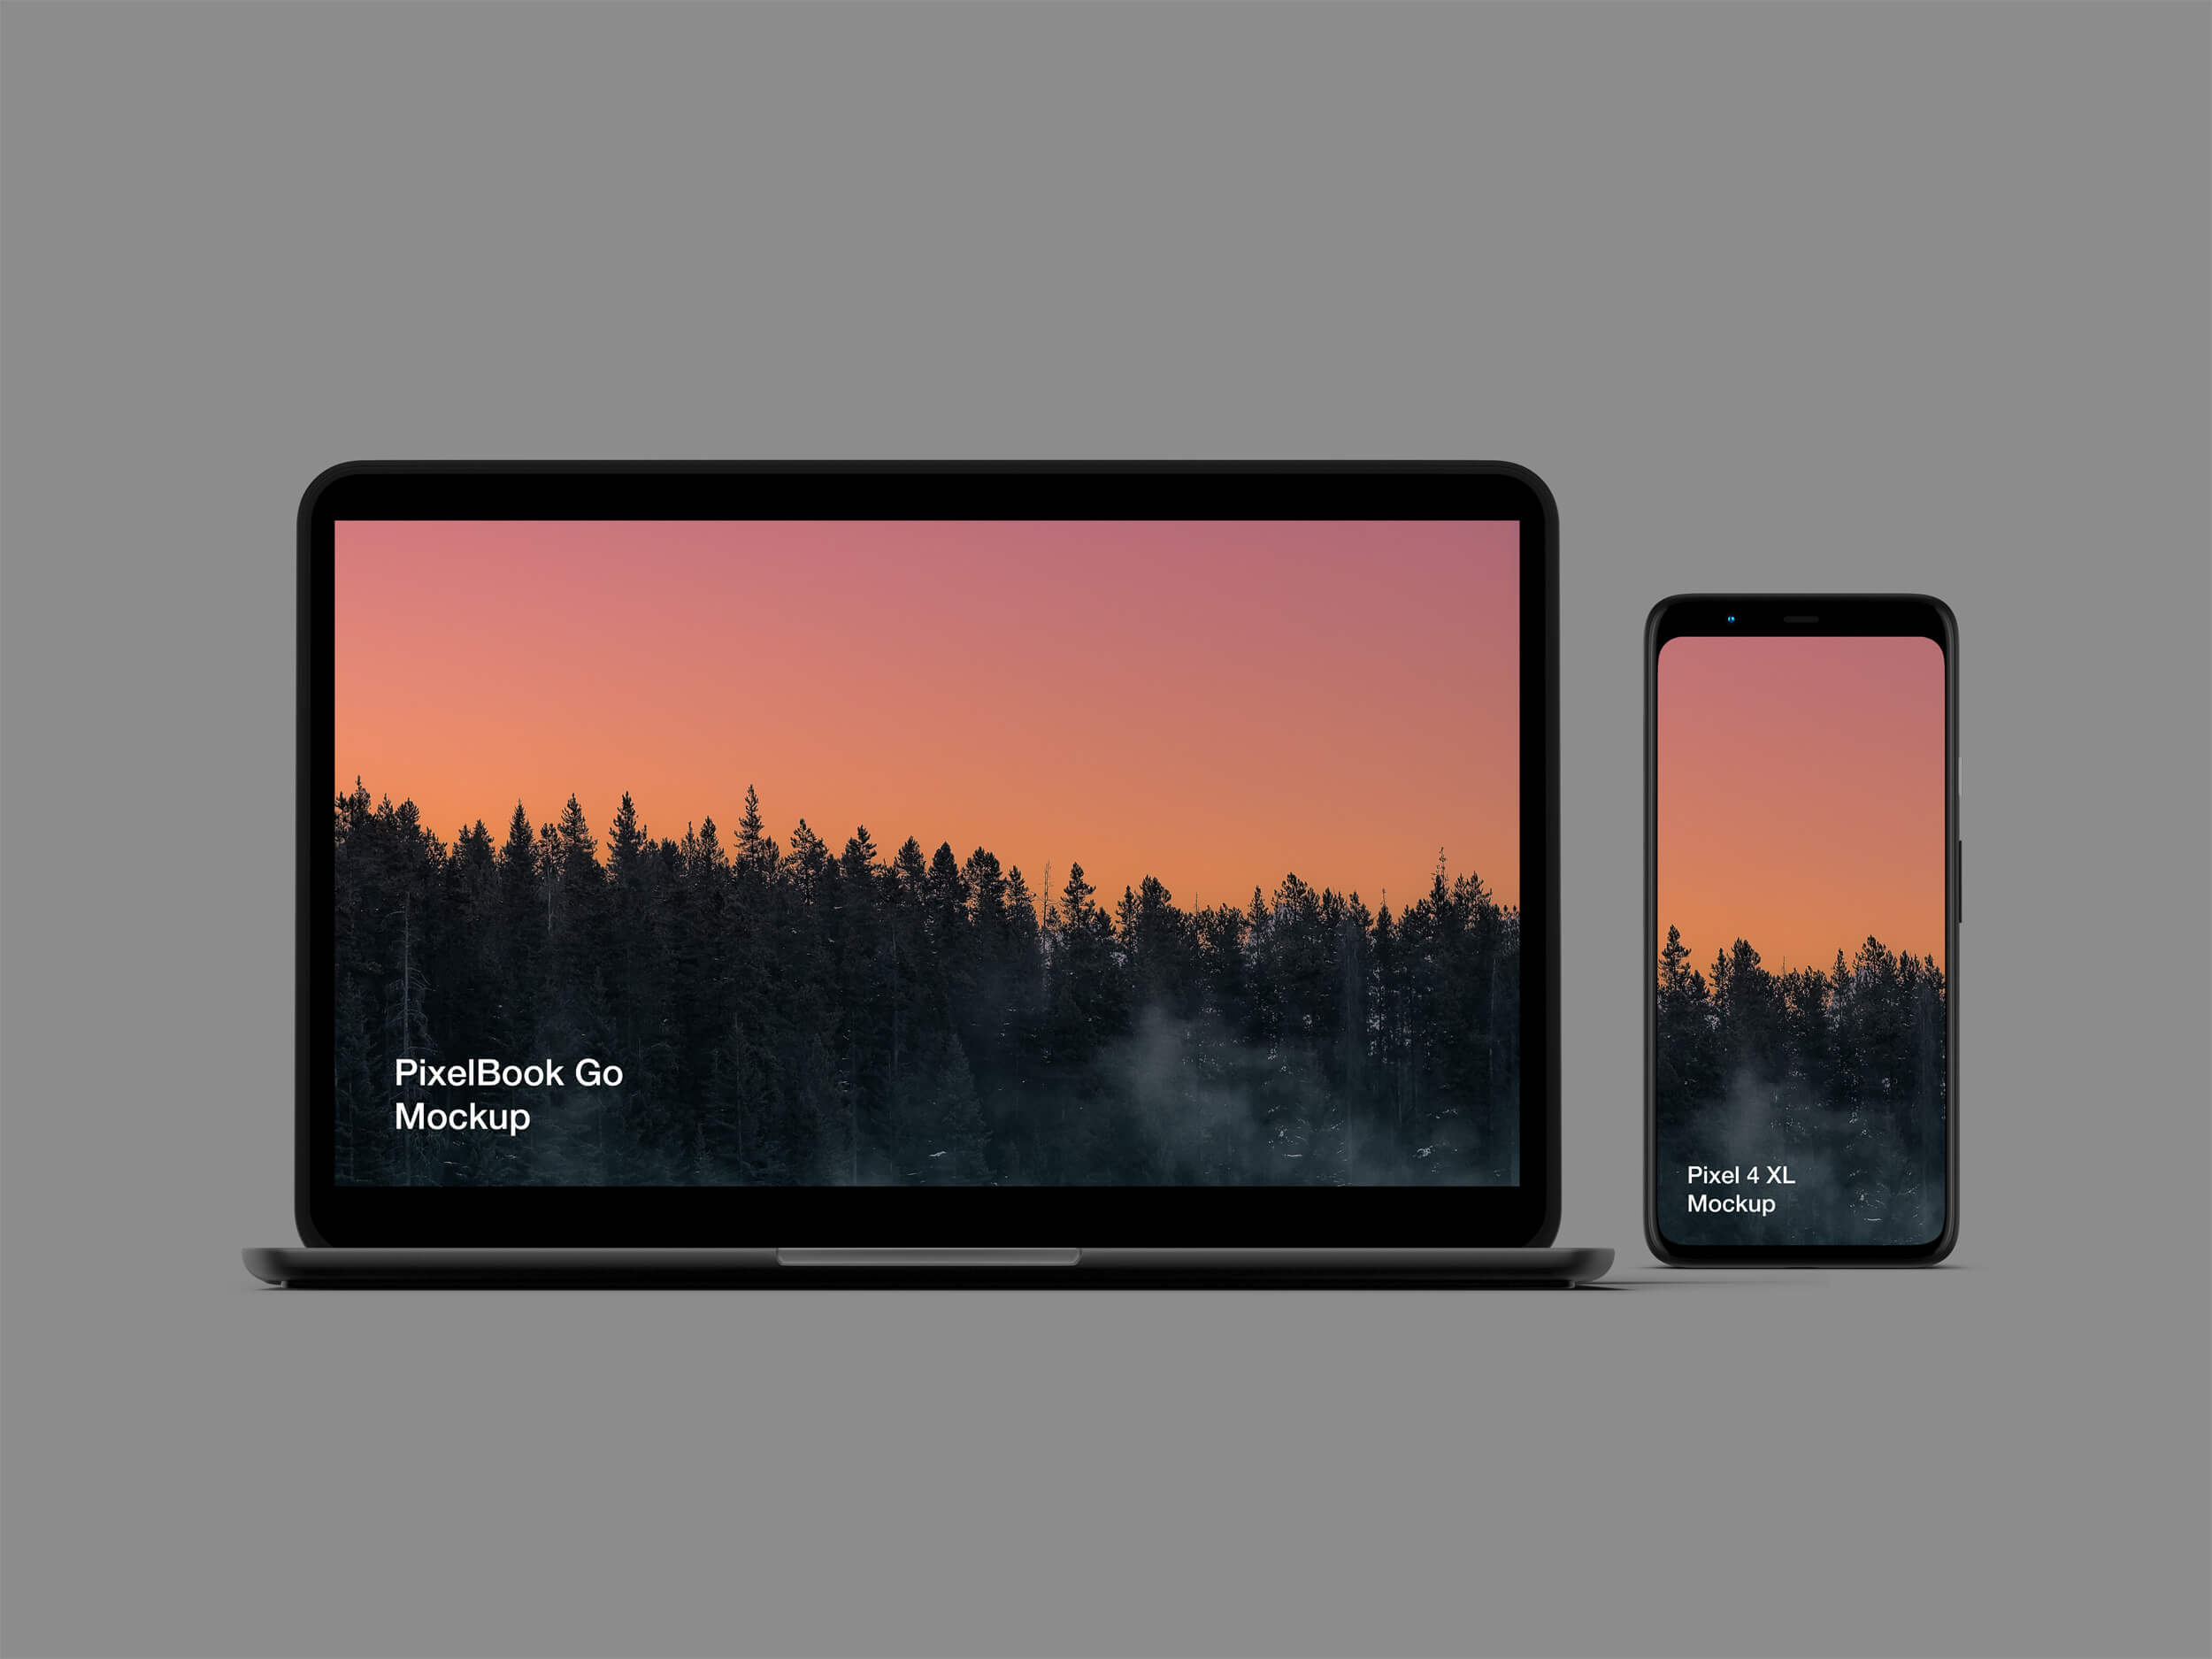 Google PixelBook Go and Pixel 4 XL Mockup